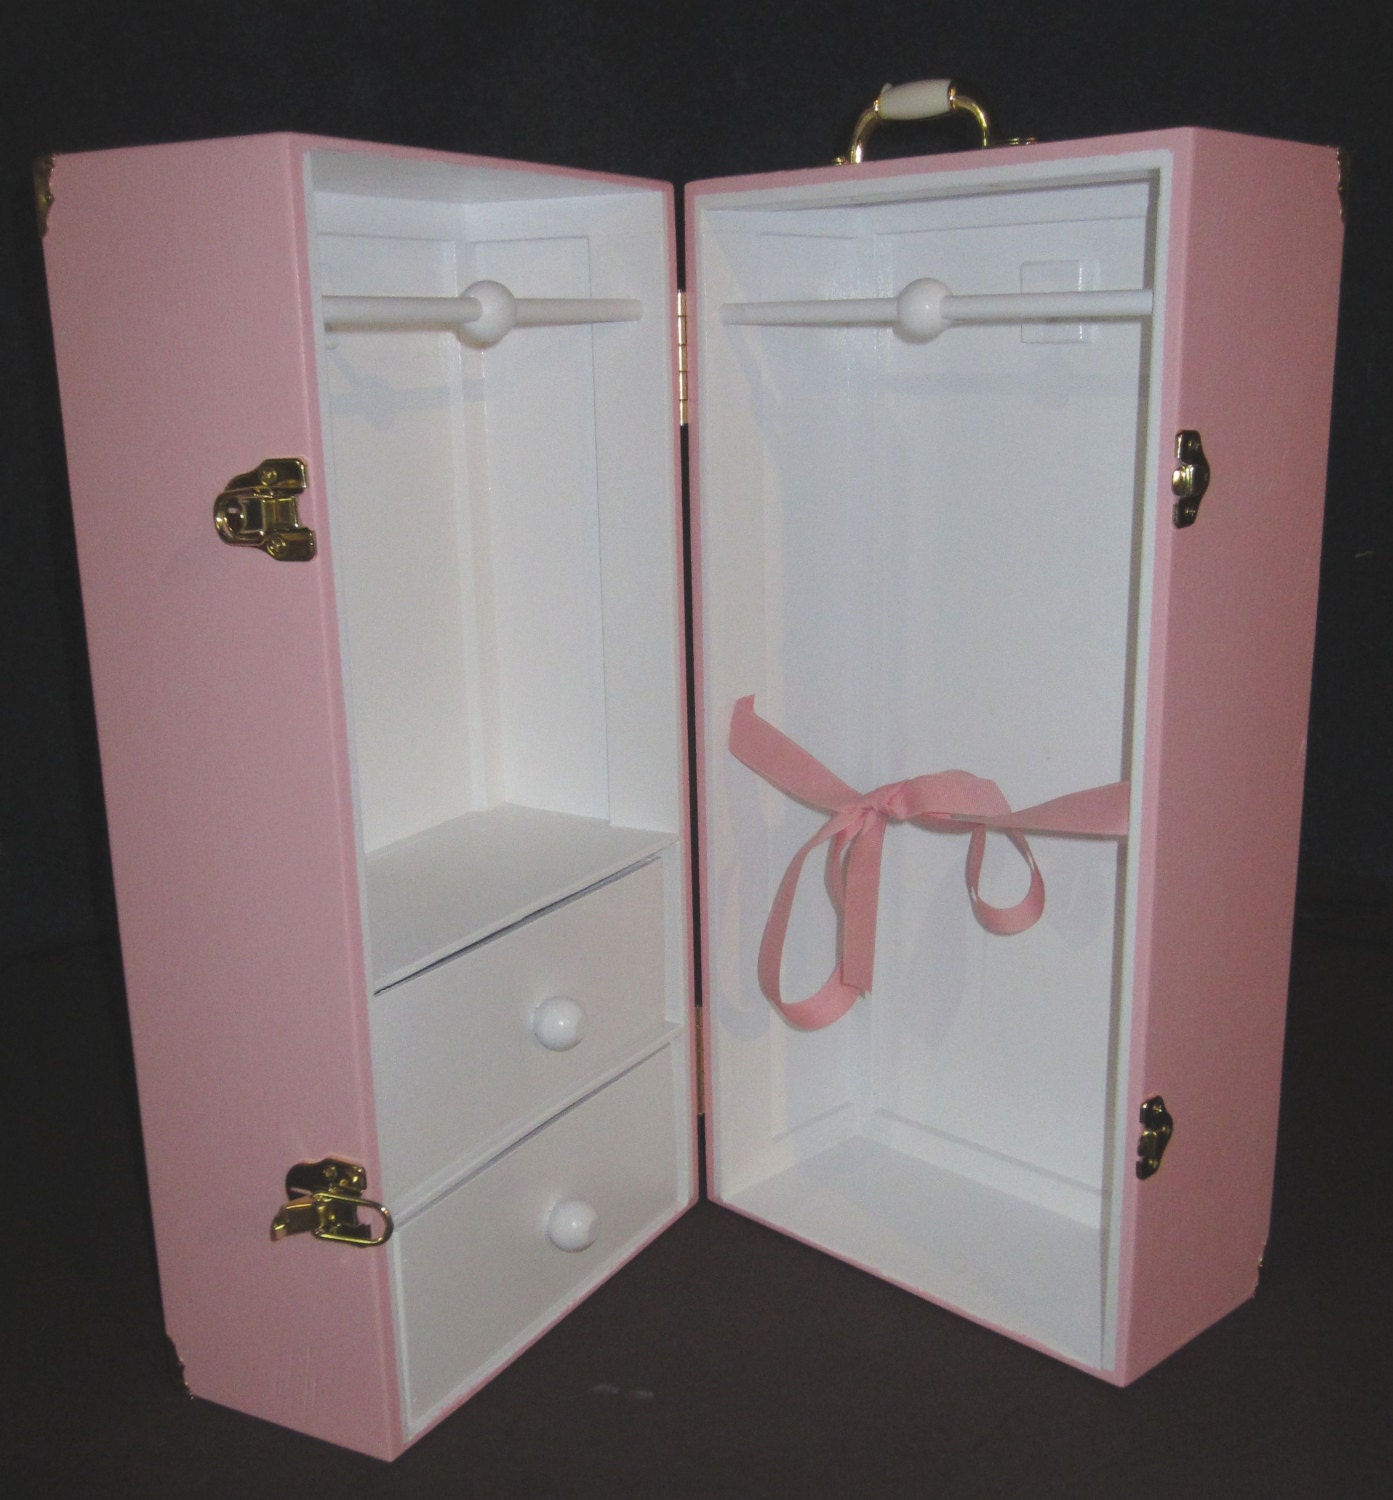 Amazing photo of Color 2 Drawer Doll Trunk 4 American Girl Doll with Ribbon Etsy with #755F48 color and 1393x1500 pixels